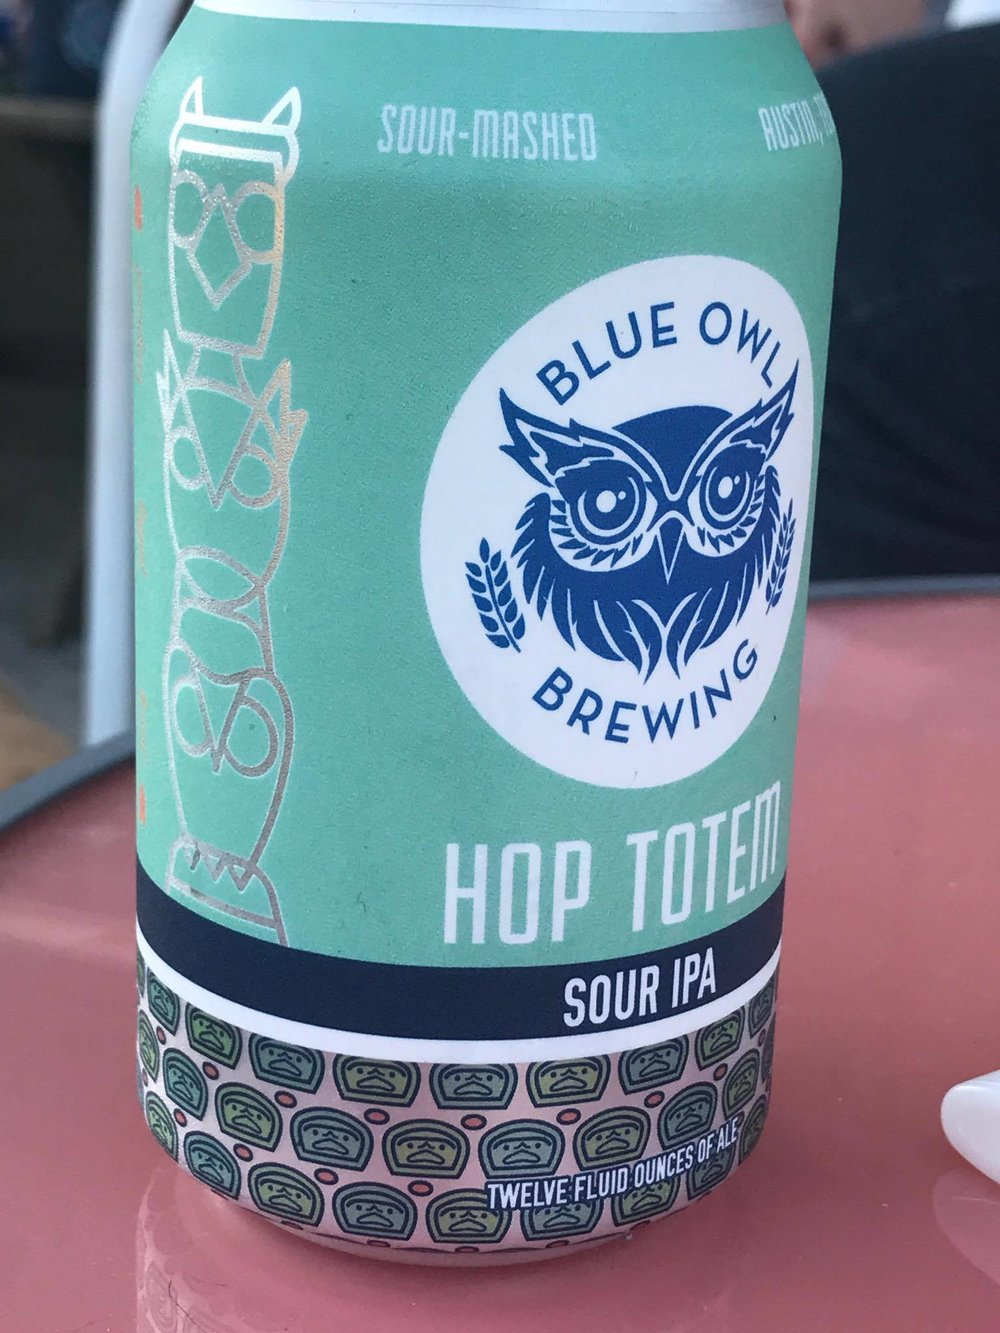 Hop Totem Sour IPA from Blue Owl Brewing